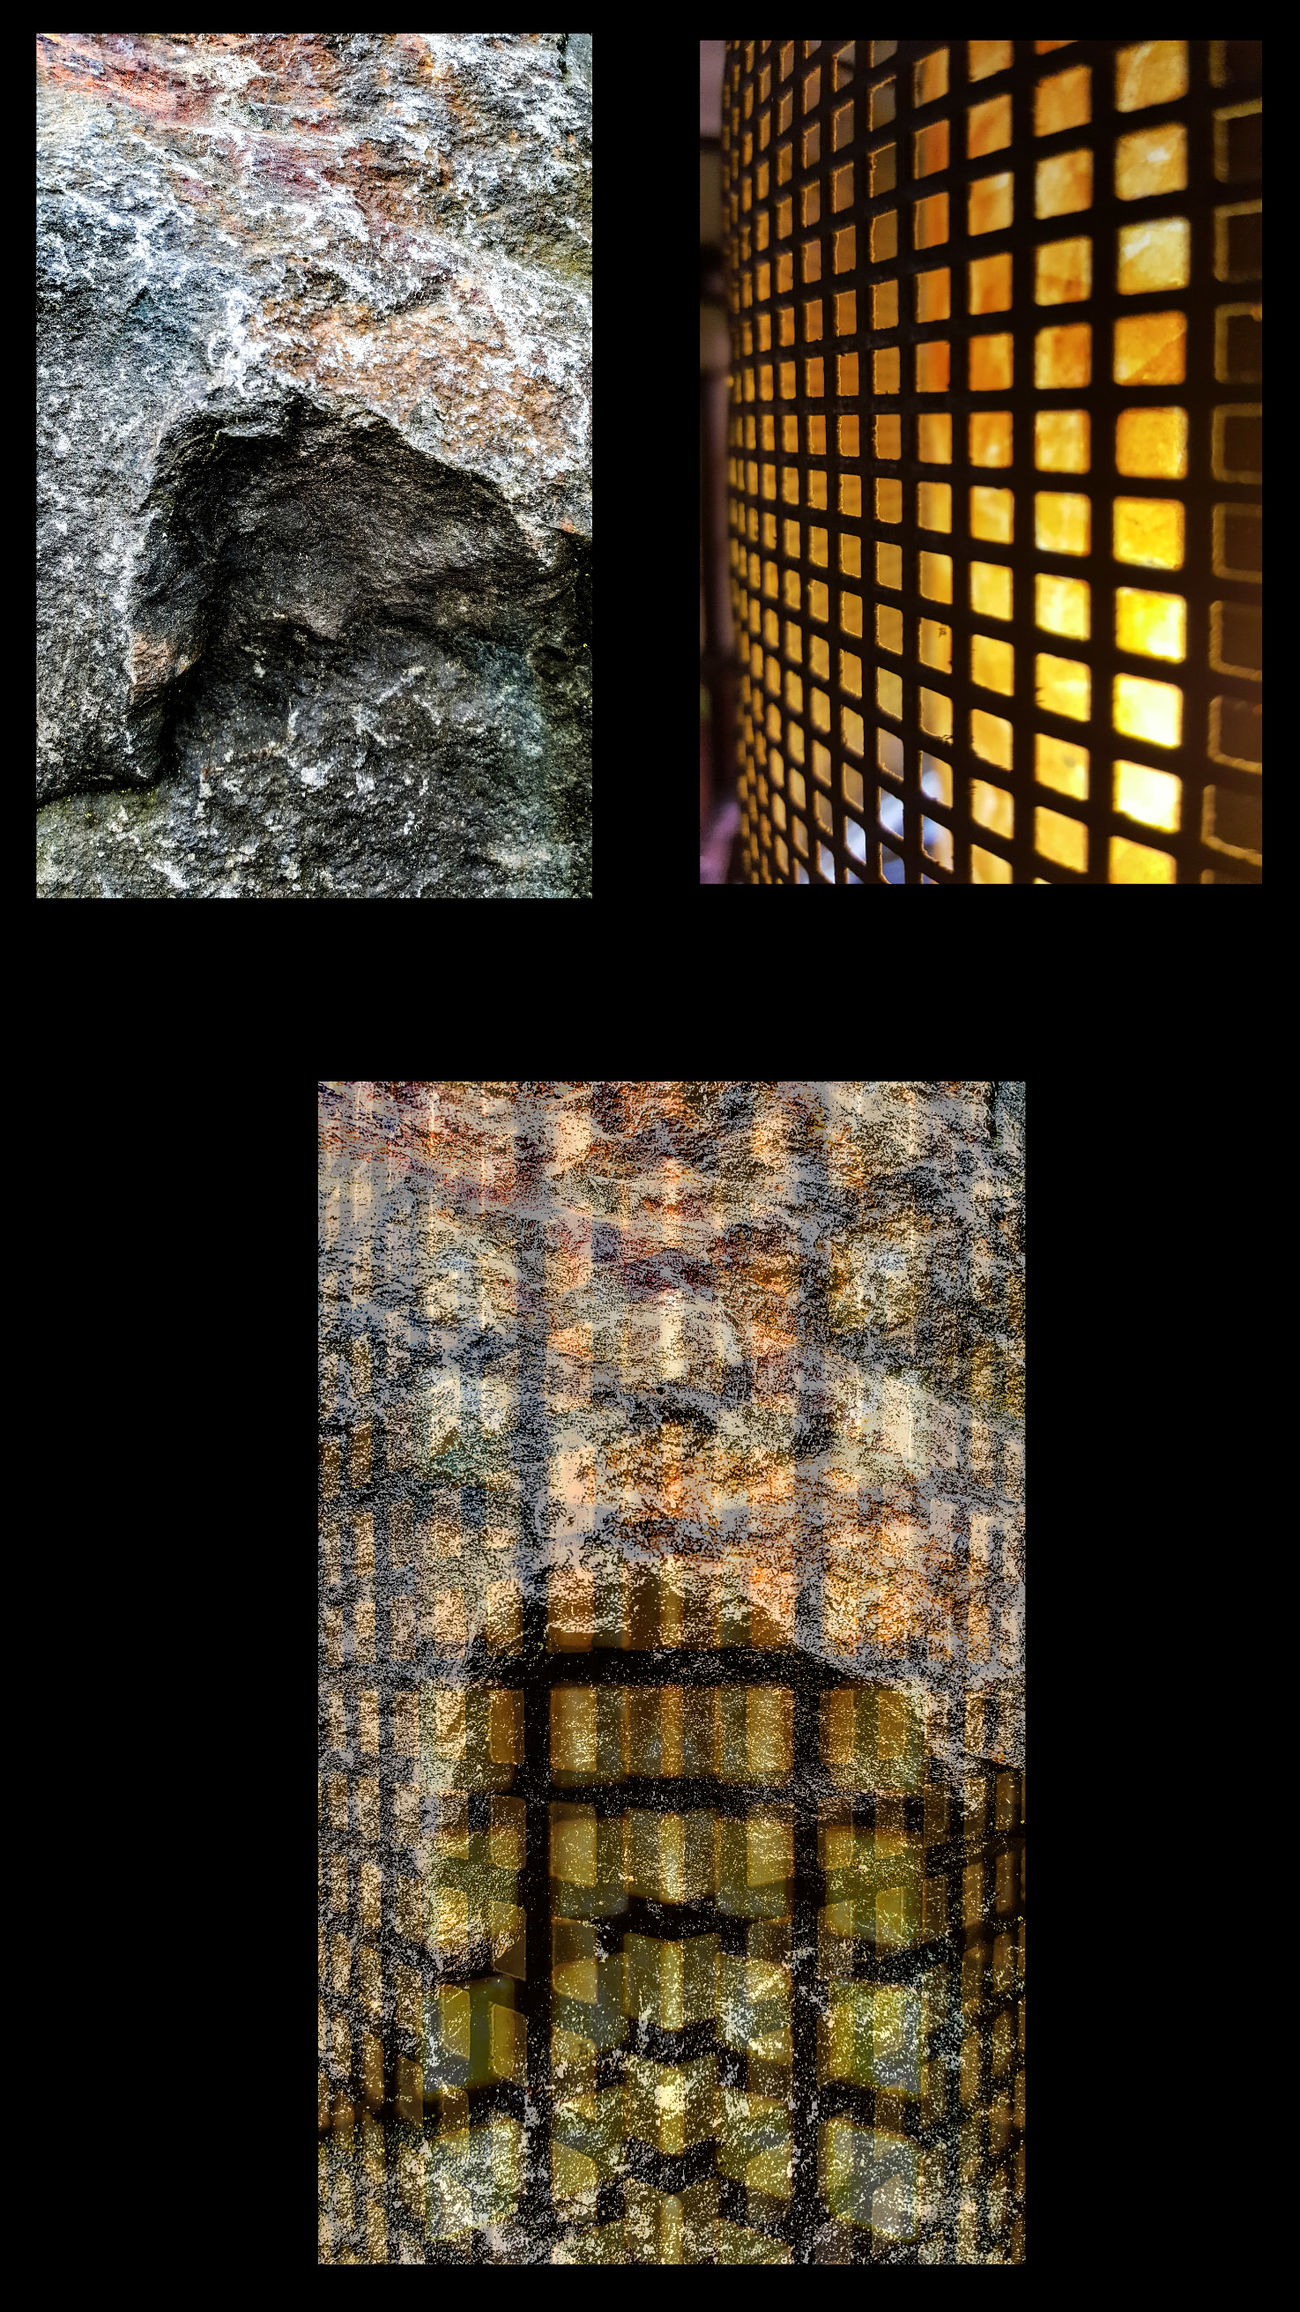 Taking 2 pictures to create 1EyeEm Gallery Eye4photography  EyeEm Darryn Doyle Oregon Check This Out Abstract Art Creativity Mixing Photos Creative Power Artistic Photography Shaping Thoughts Beauty Redefined Hidden Treasure Artistic Freedom Artistic Expression Darryn Doyle Layered Photos